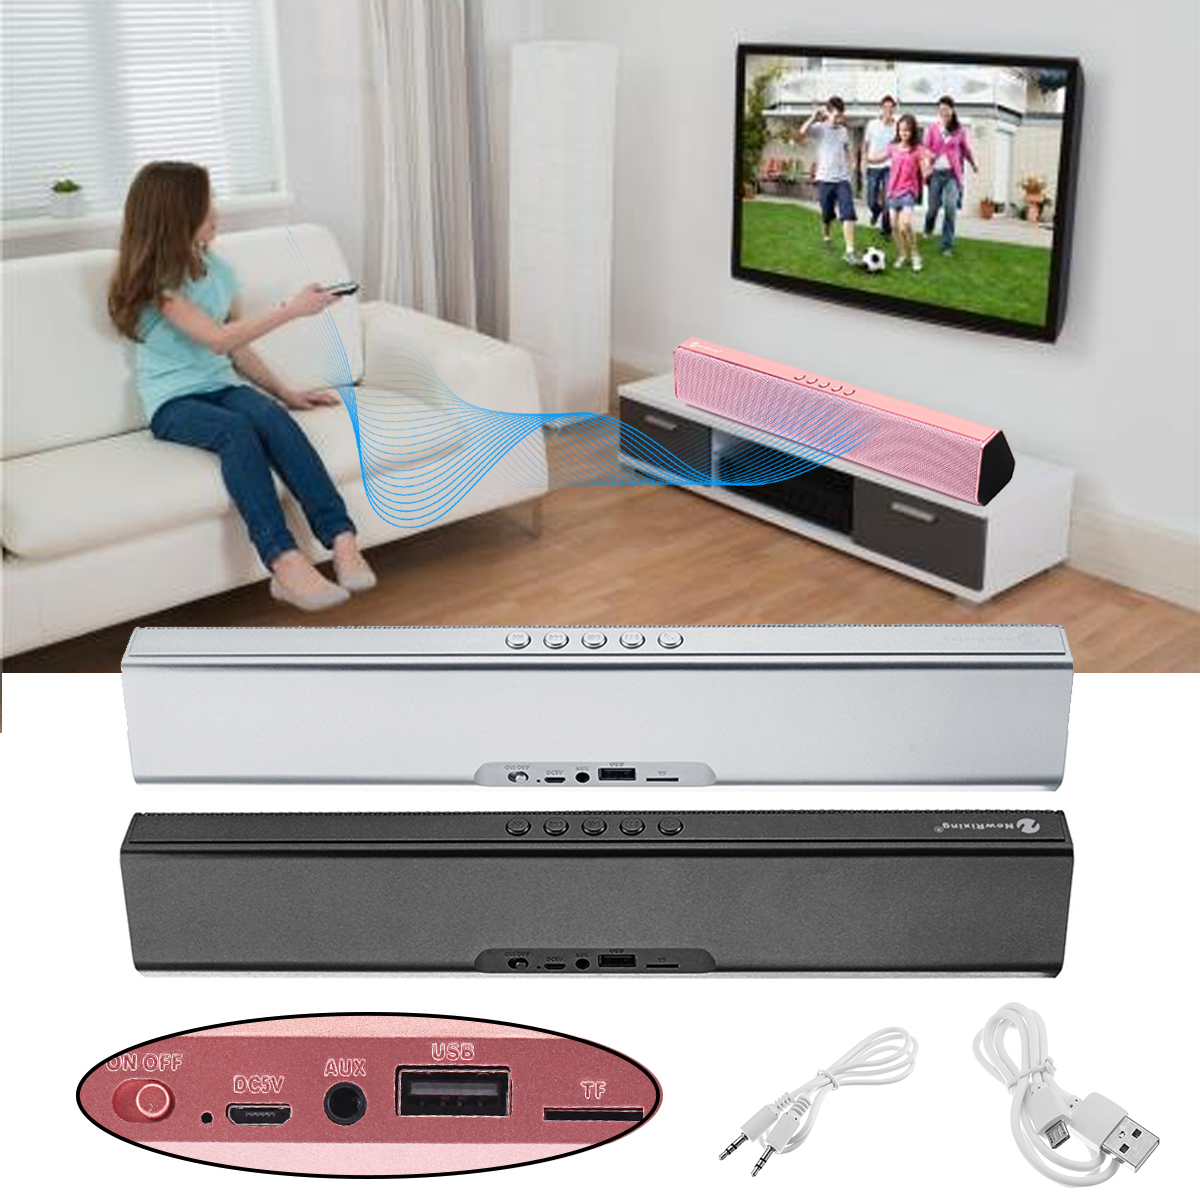 Portable Wireless Bluetooth Speaker Sound Bar 3D Stereo Surround Music TV/TF/USB/FM/AUX Outdoor Music Player Kids Child Gift getihu portable mini bluetooth speakers wireless hands free led speaker tf usb fm sound music for iphone x samsung mobile phone